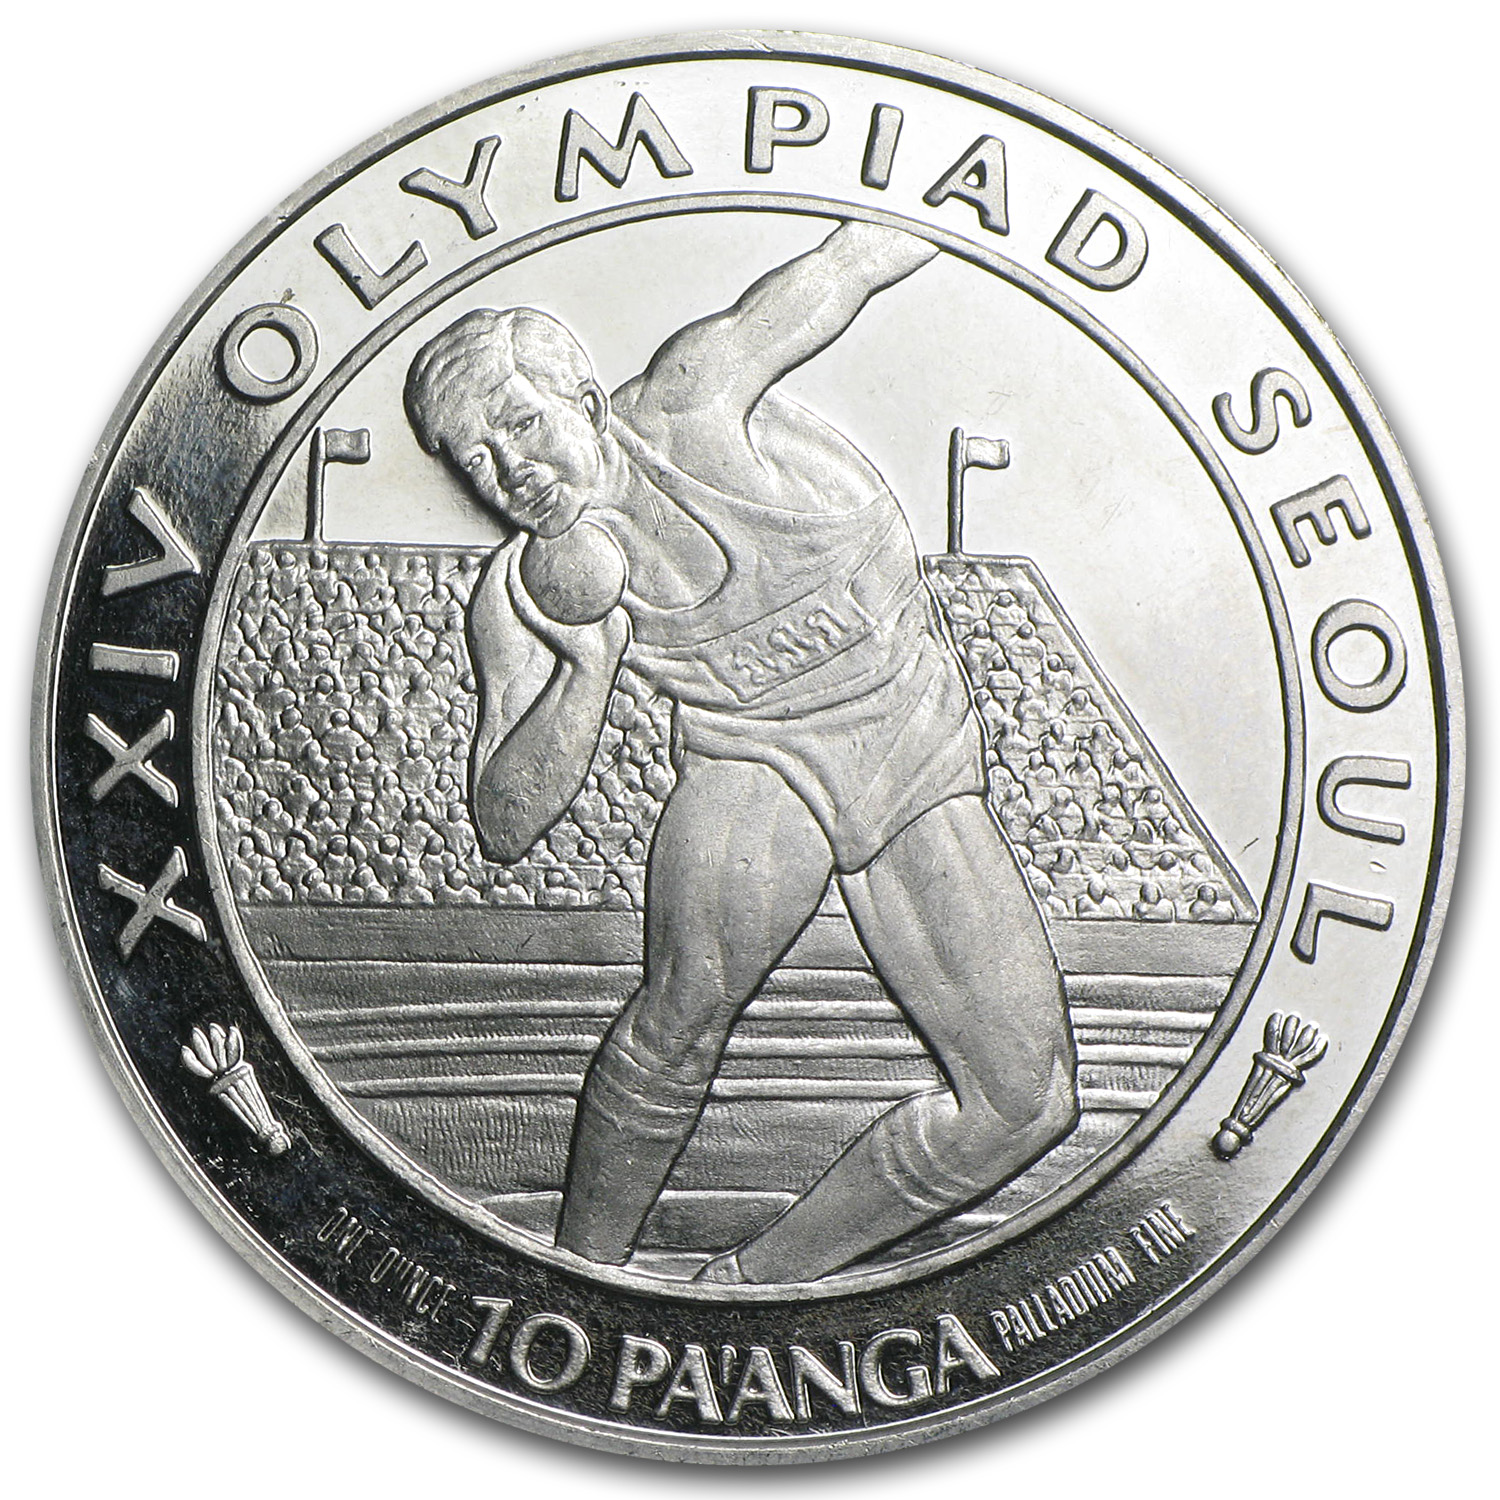 1988 1 oz 10 Pa'anga Proof Palladium Coin (Scruffy)